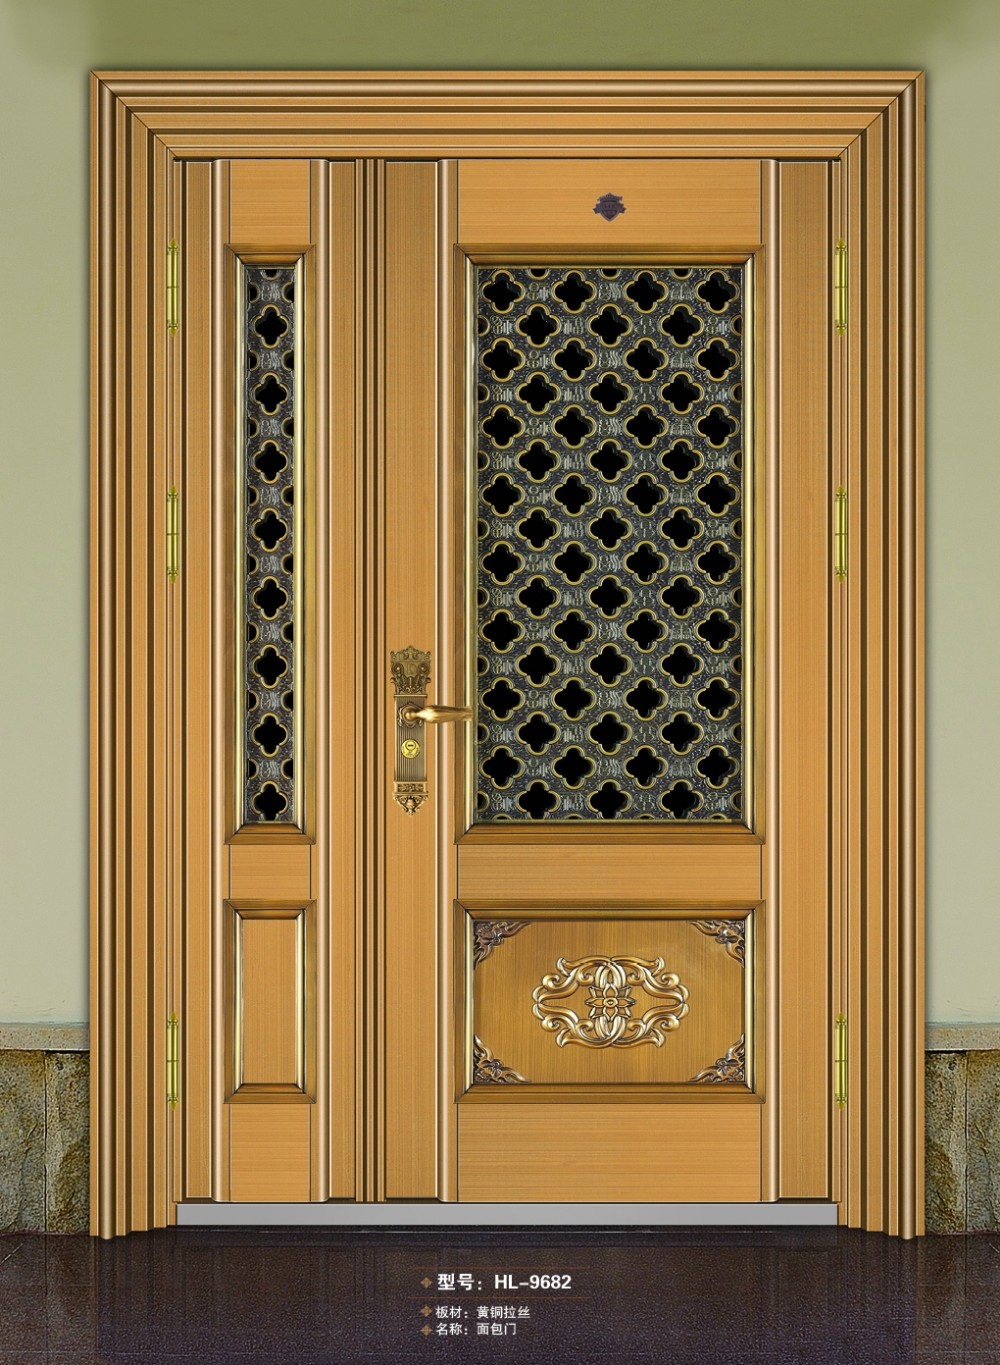 Security Storm Doors Product : Stainless steel storm security design doors bread door